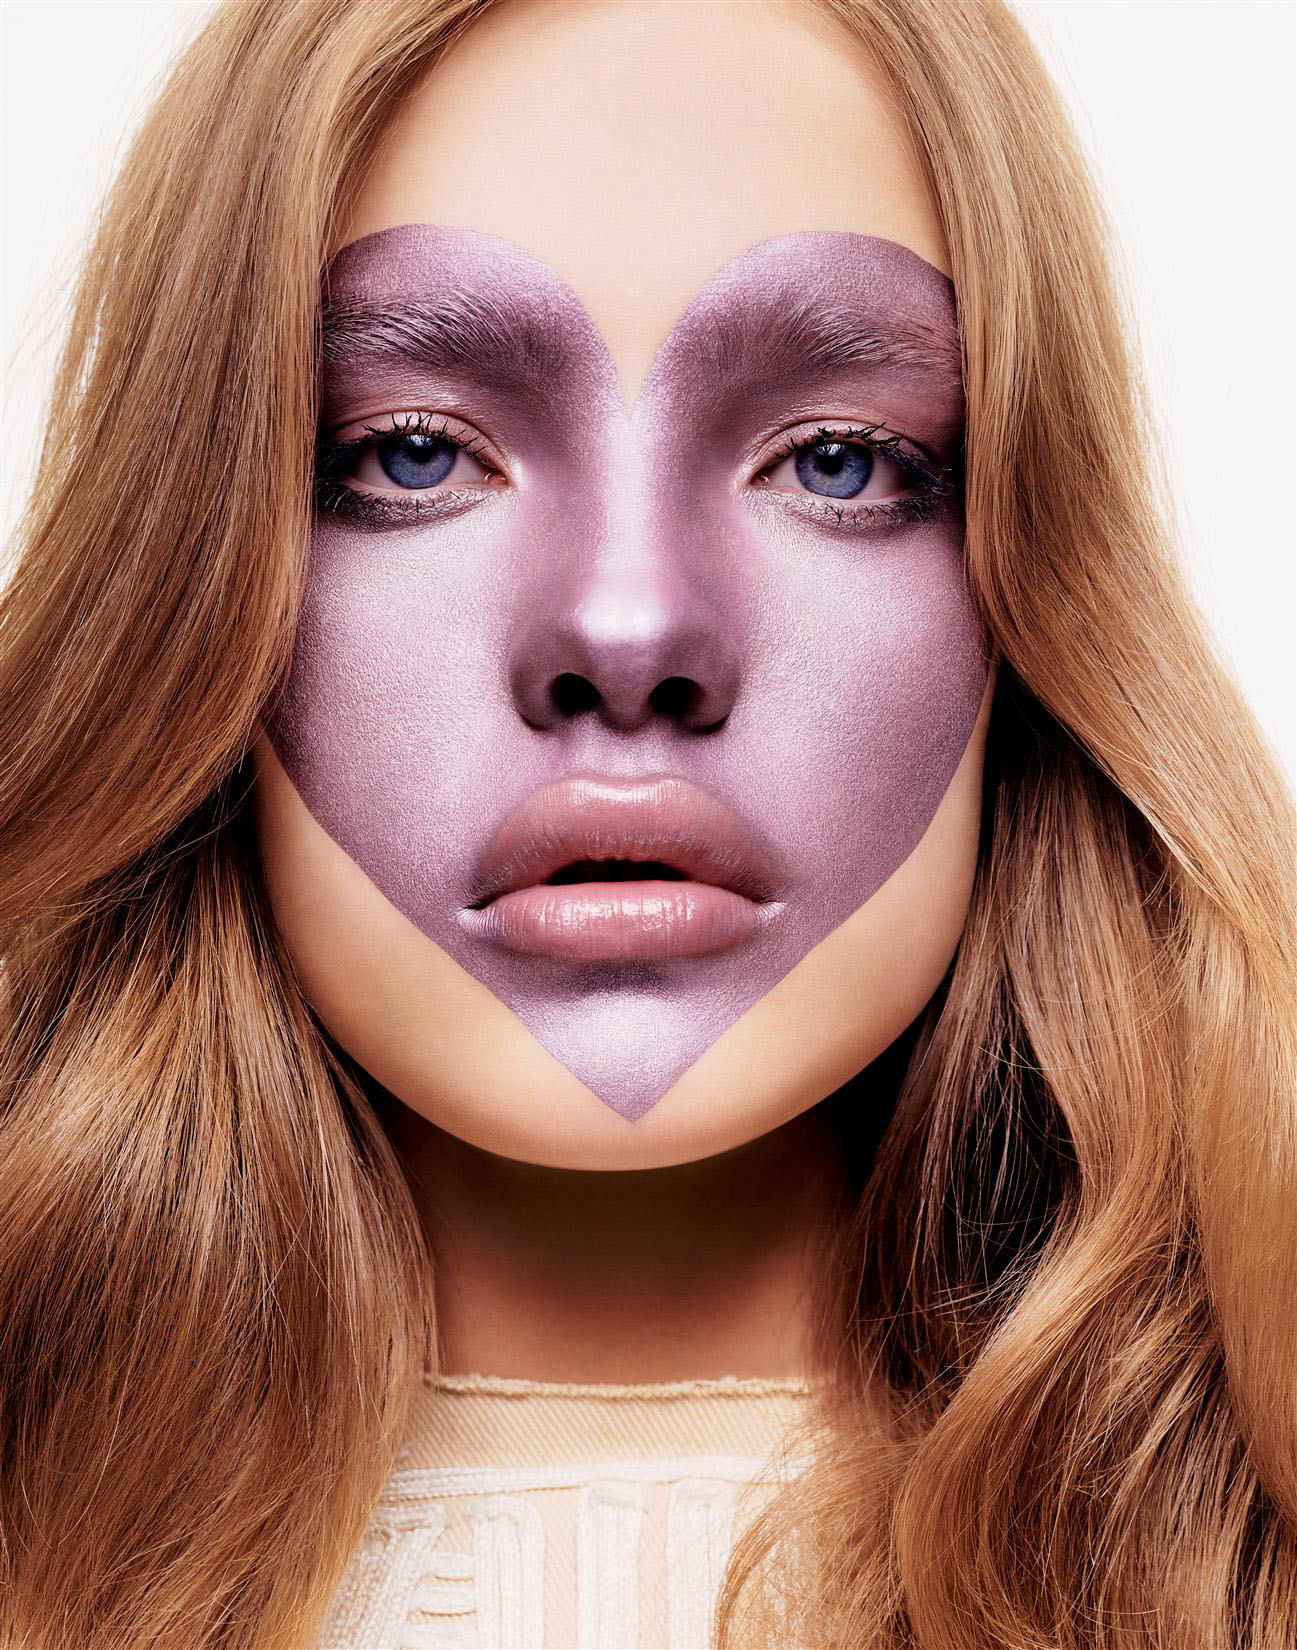 """Makeup """"heart on face"""" by Natalia Vodianova vertical image"""